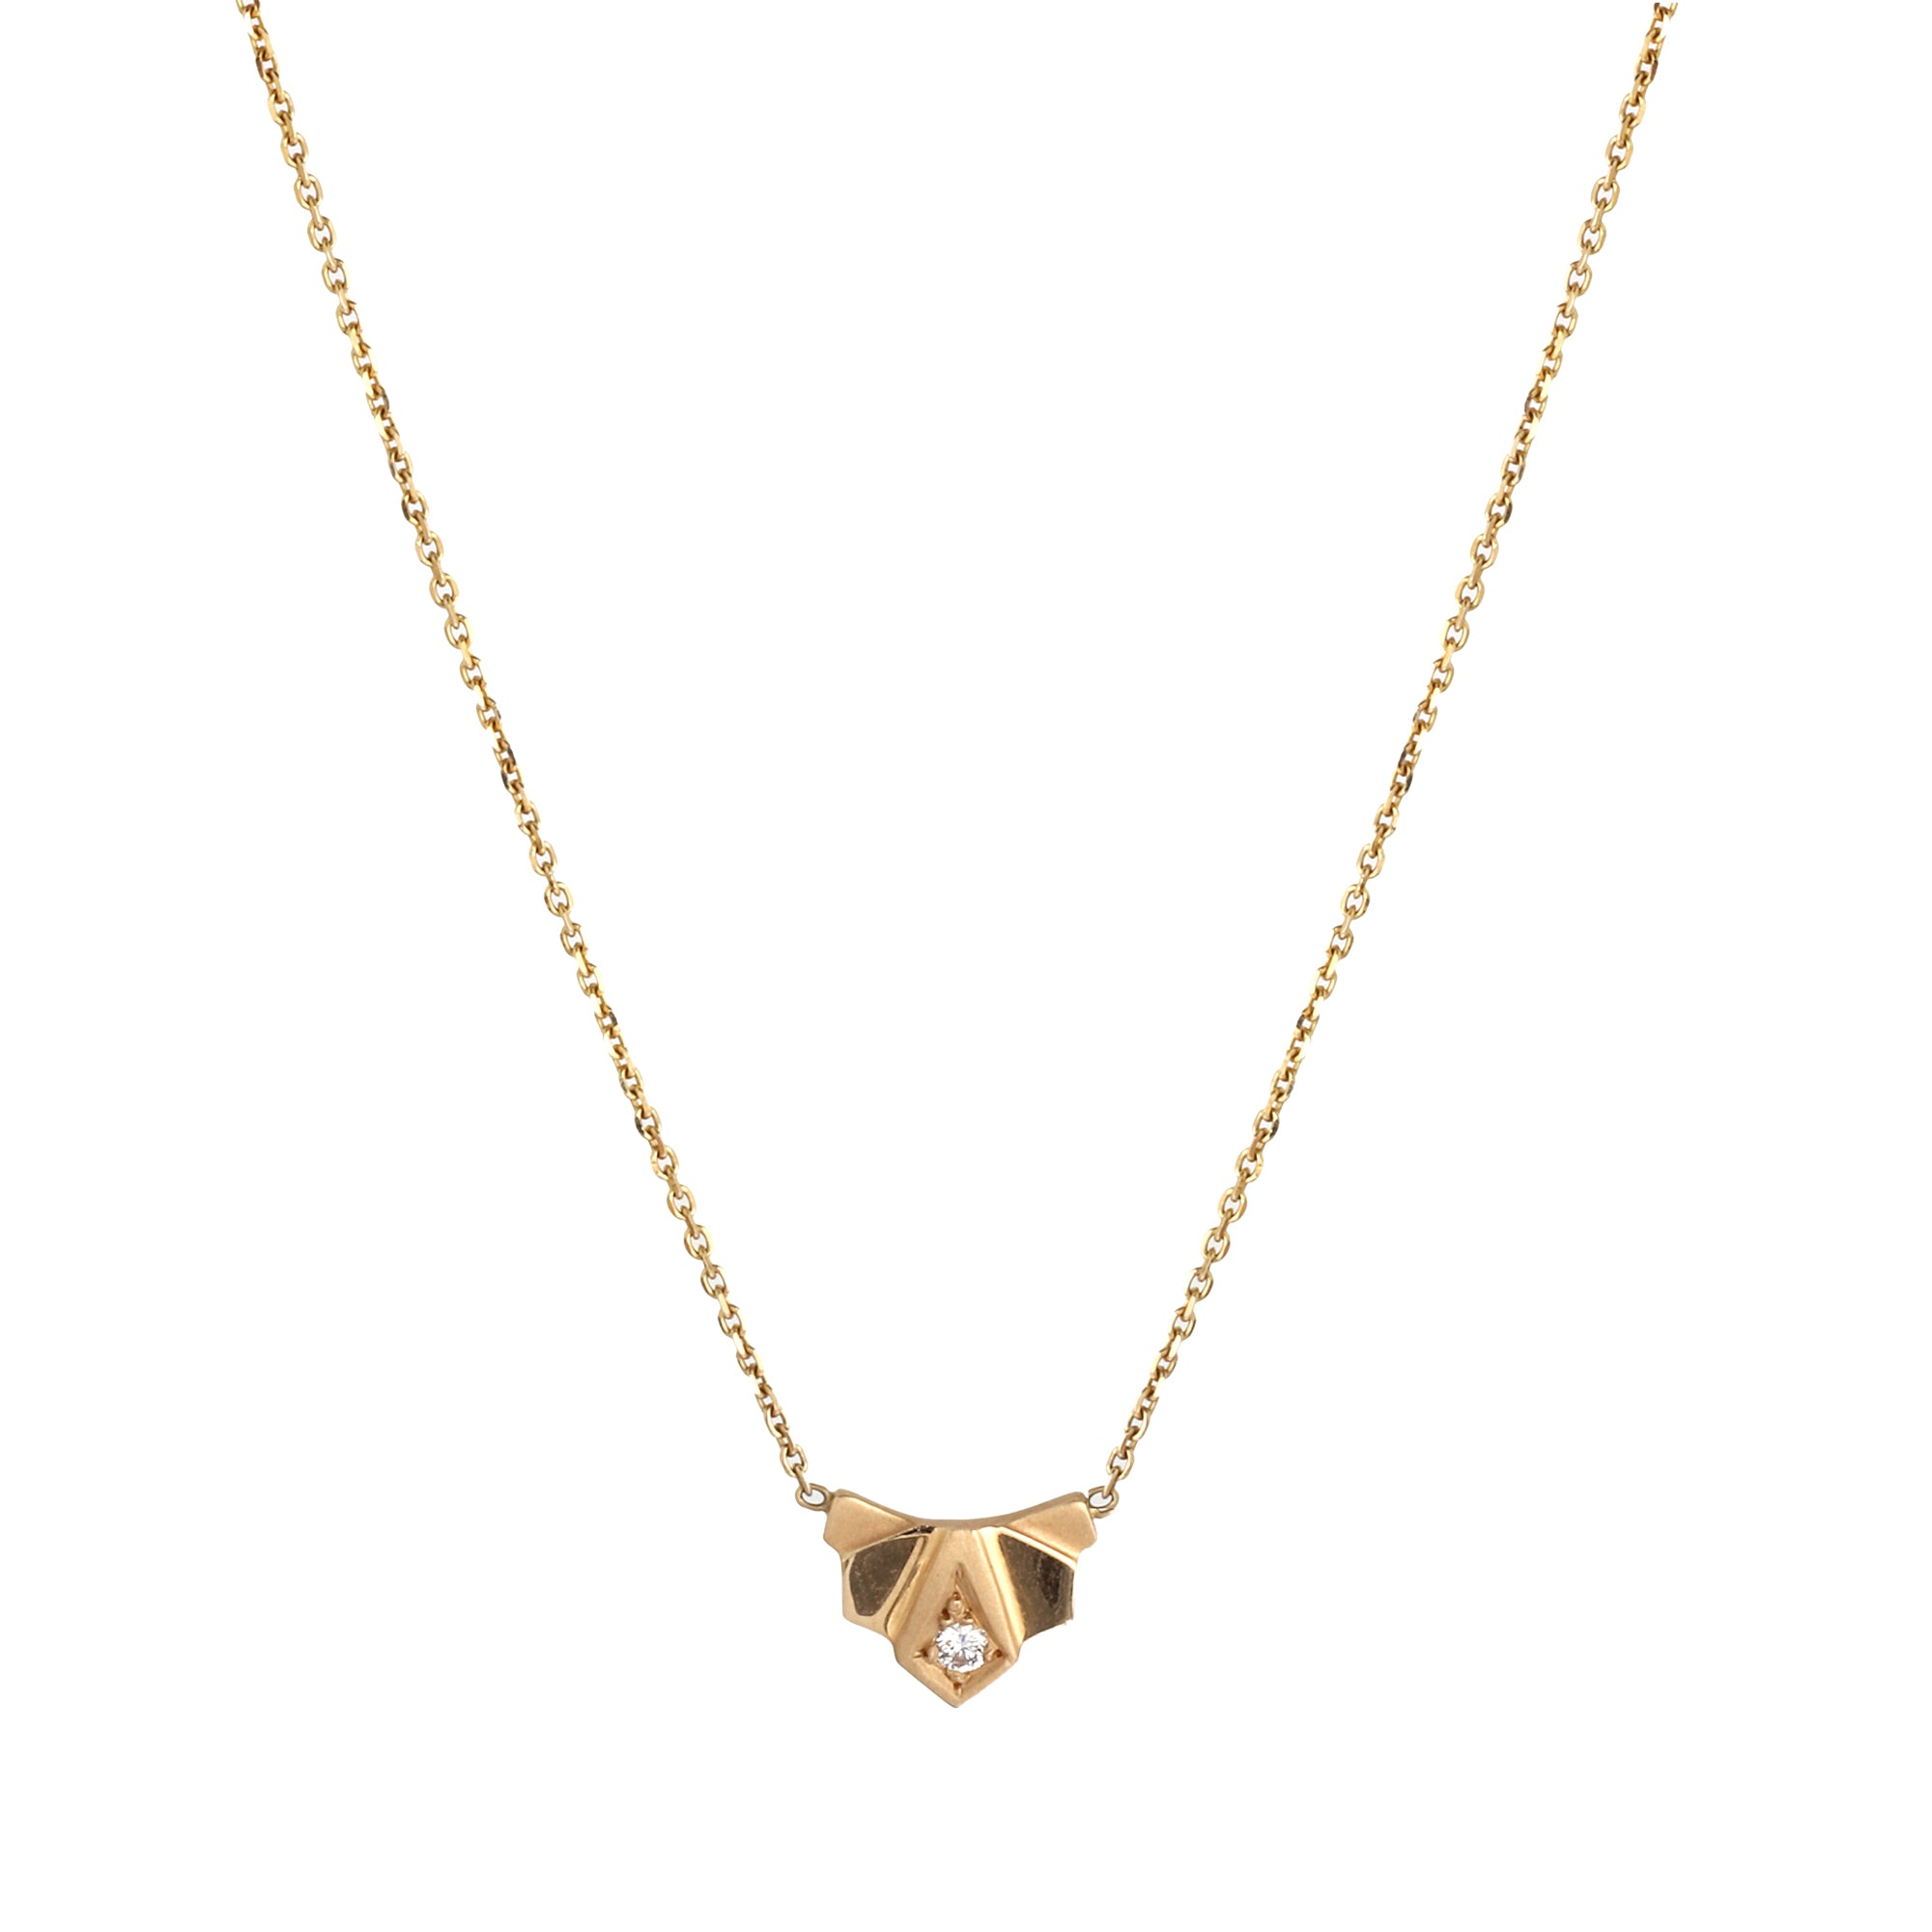 Gold & White Diamond Nomad Fan Necklace by Michelle Fantaci for Broken English Jewelry